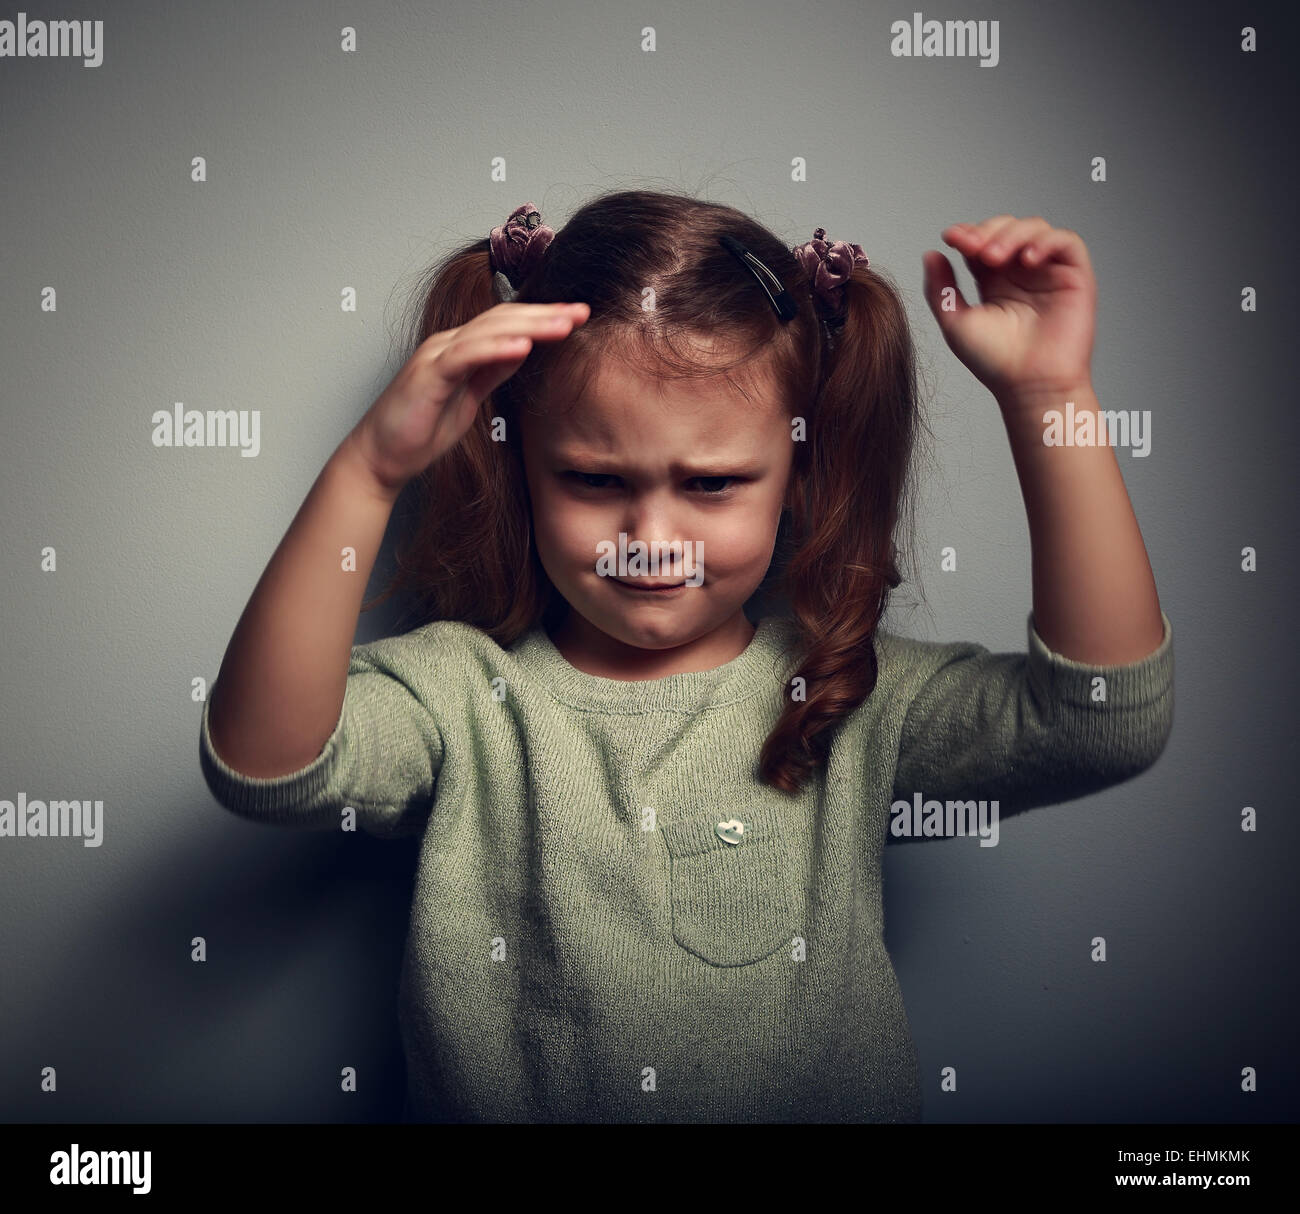 Very angry kid girl looking aggressive and waving the arms on dark background. Closeup portrait - Stock Image